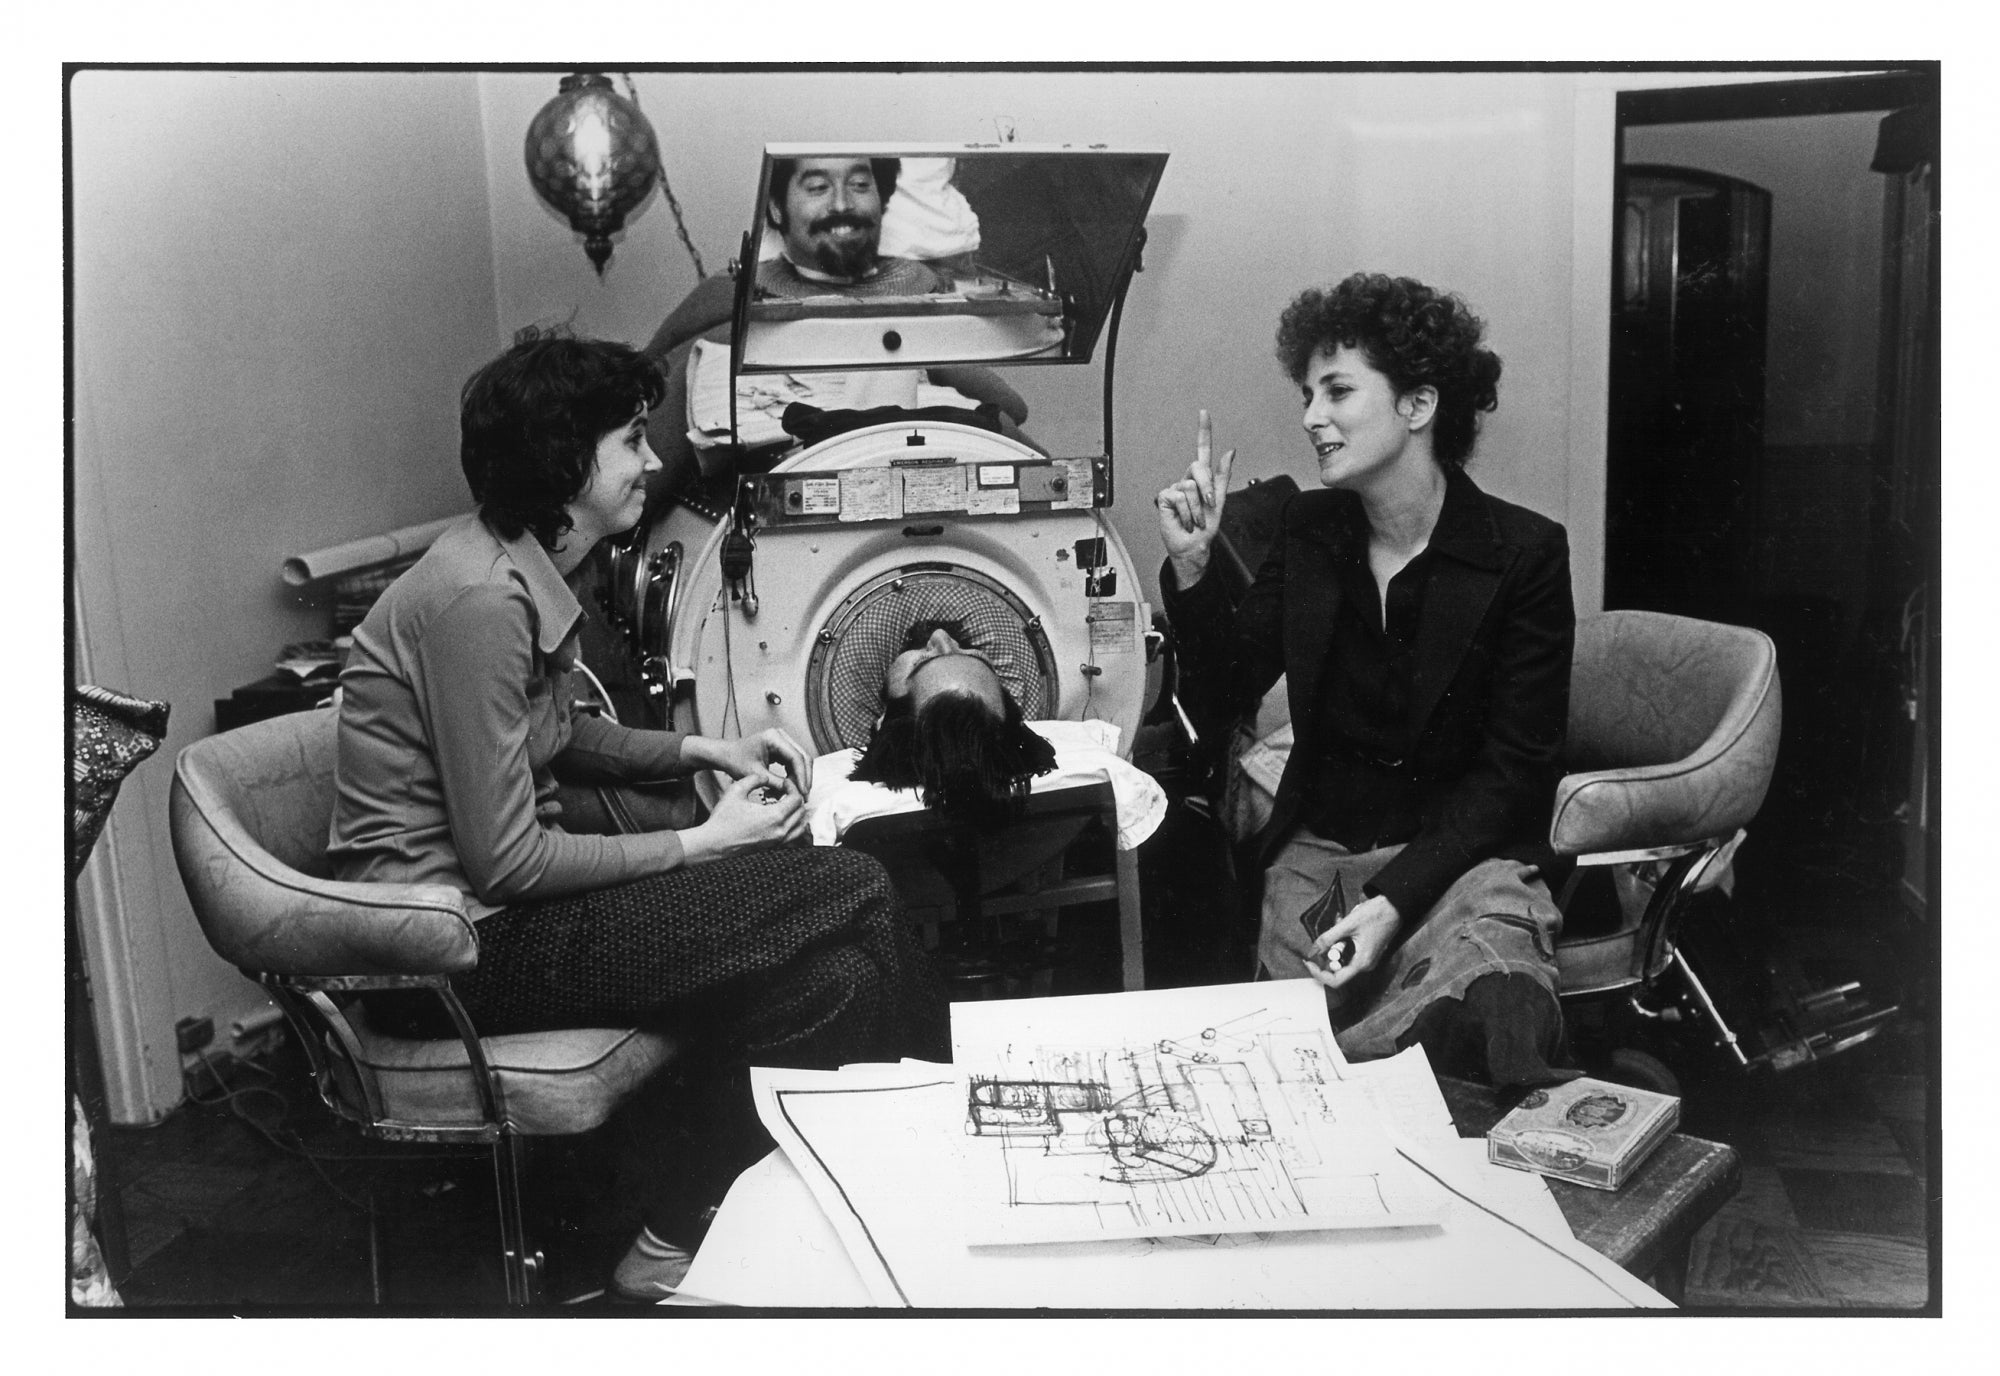 Cathy, Ed and Architect Sally Swanson decide how to renovate their new home so that the iron lung is the center of activity.